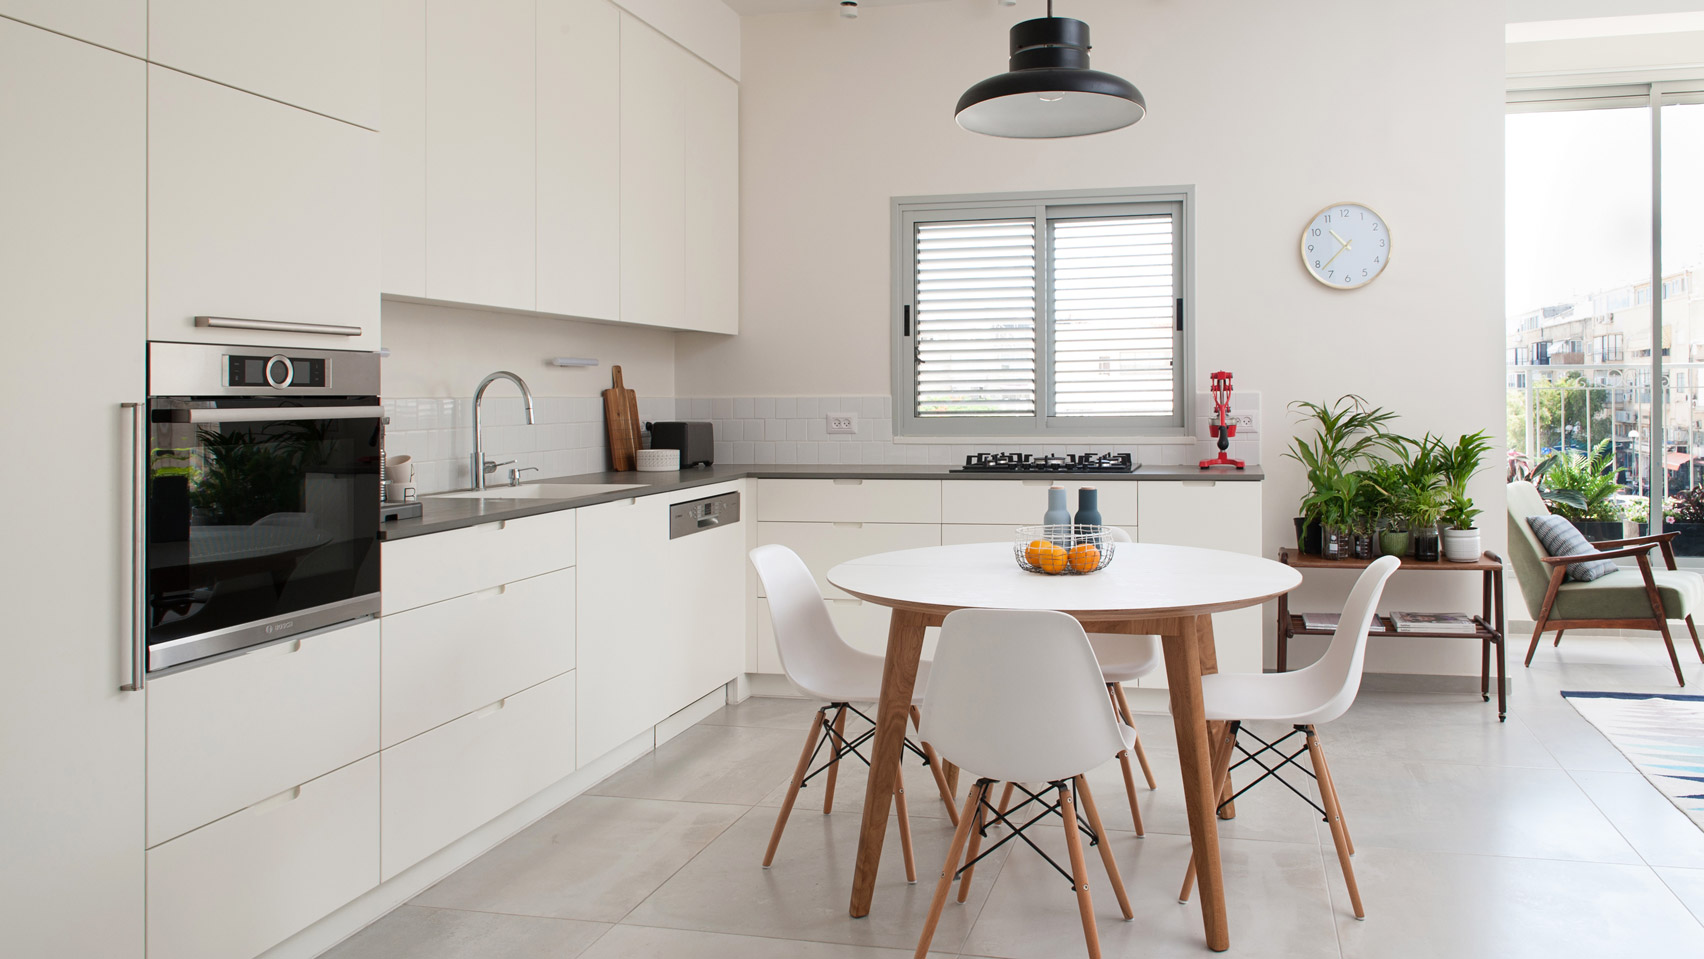 Dalit Lilienthal renovates small Tel Aviv apartment to fit a growing ...